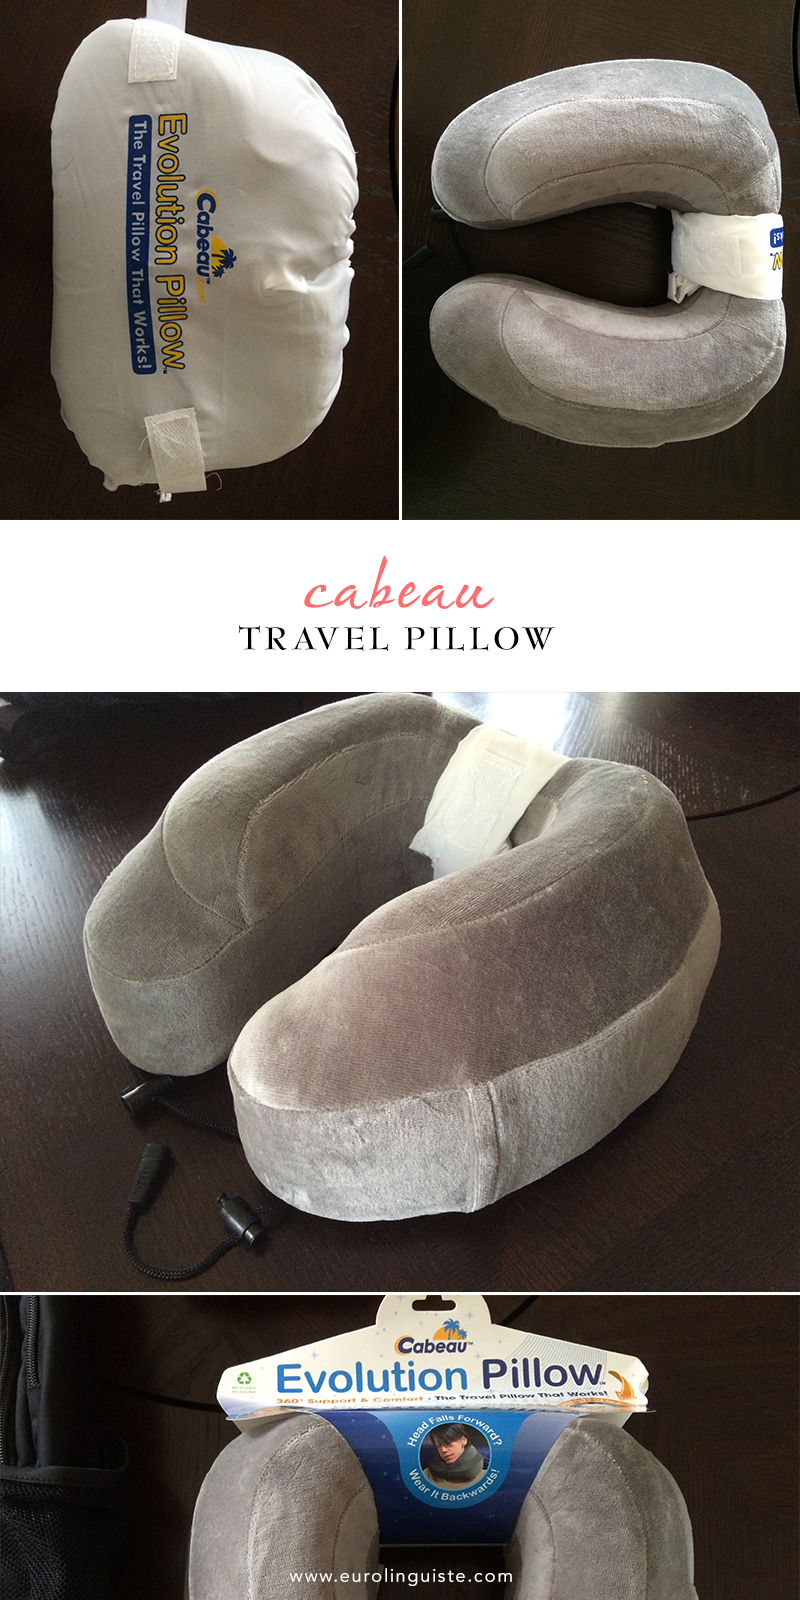 The Cabeau travel pillow is my first travel pillow and it also helped me to sleep soundly on my last flight! You can check out my review here.